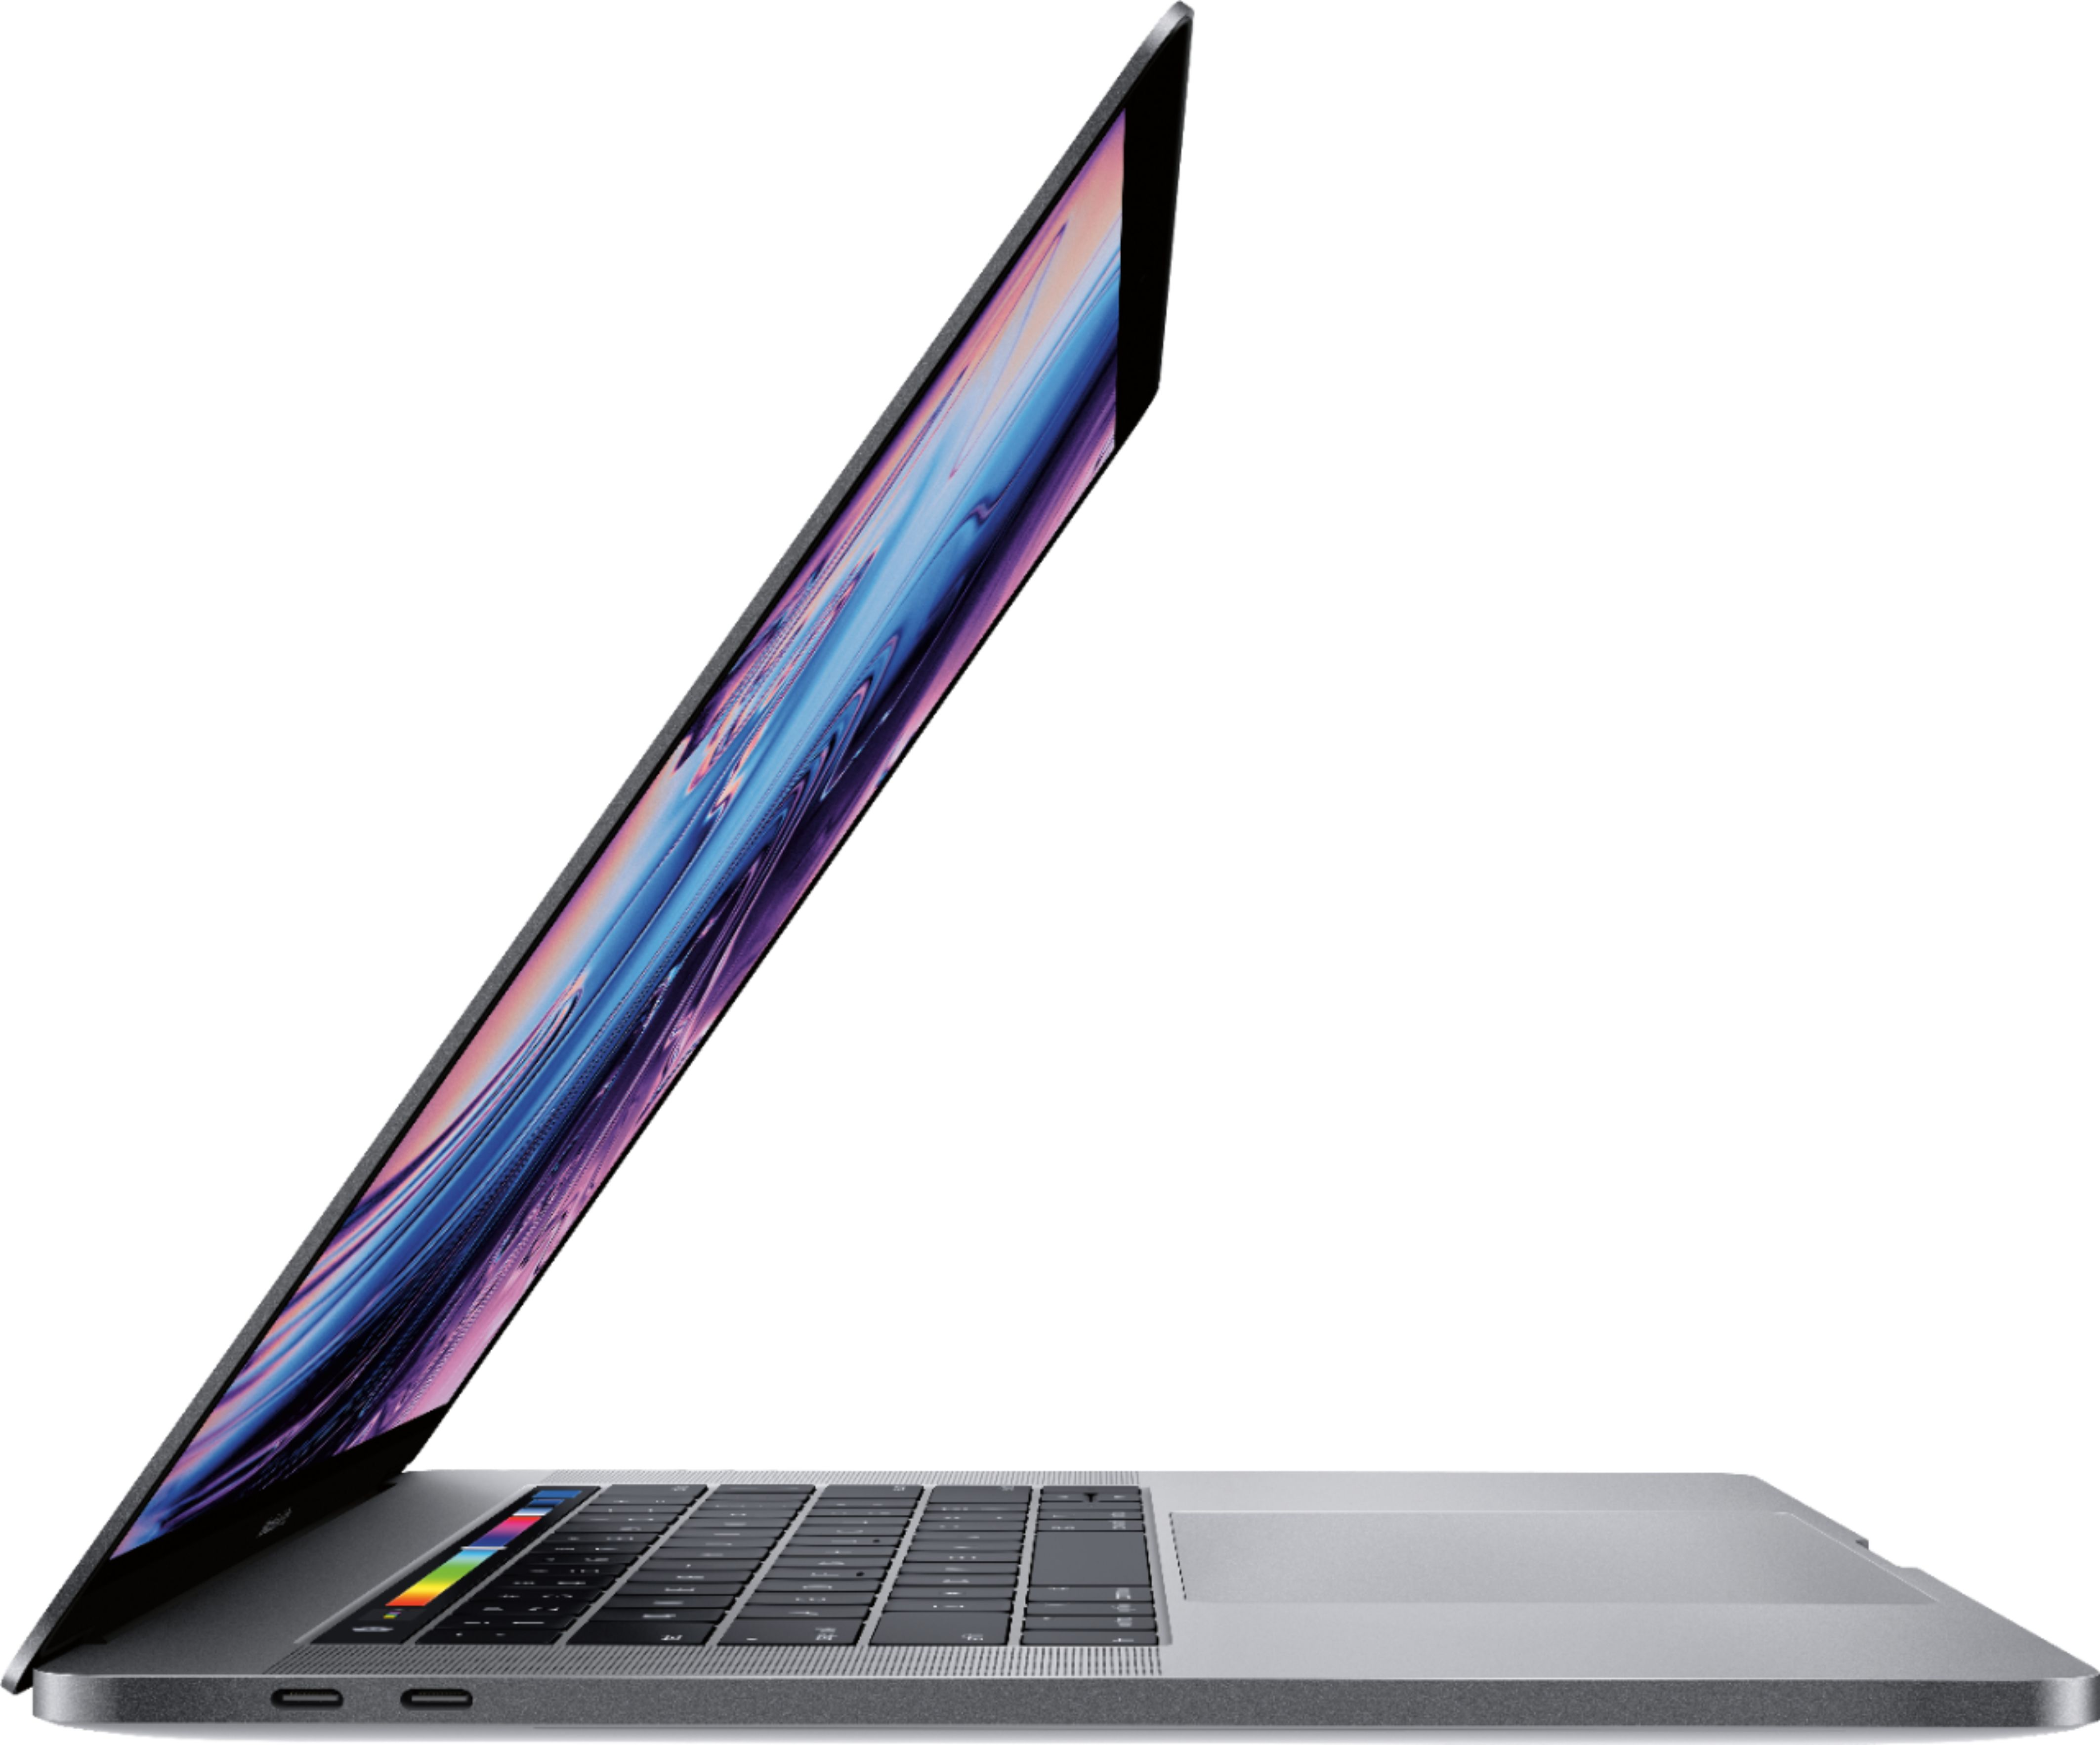 """Alt View Zoom 11. Apple - MacBook Pro 15.4"""" Laptop - Intel Core i9 - 32GB Memory - 1TB Solid State Drive - Space Gray."""